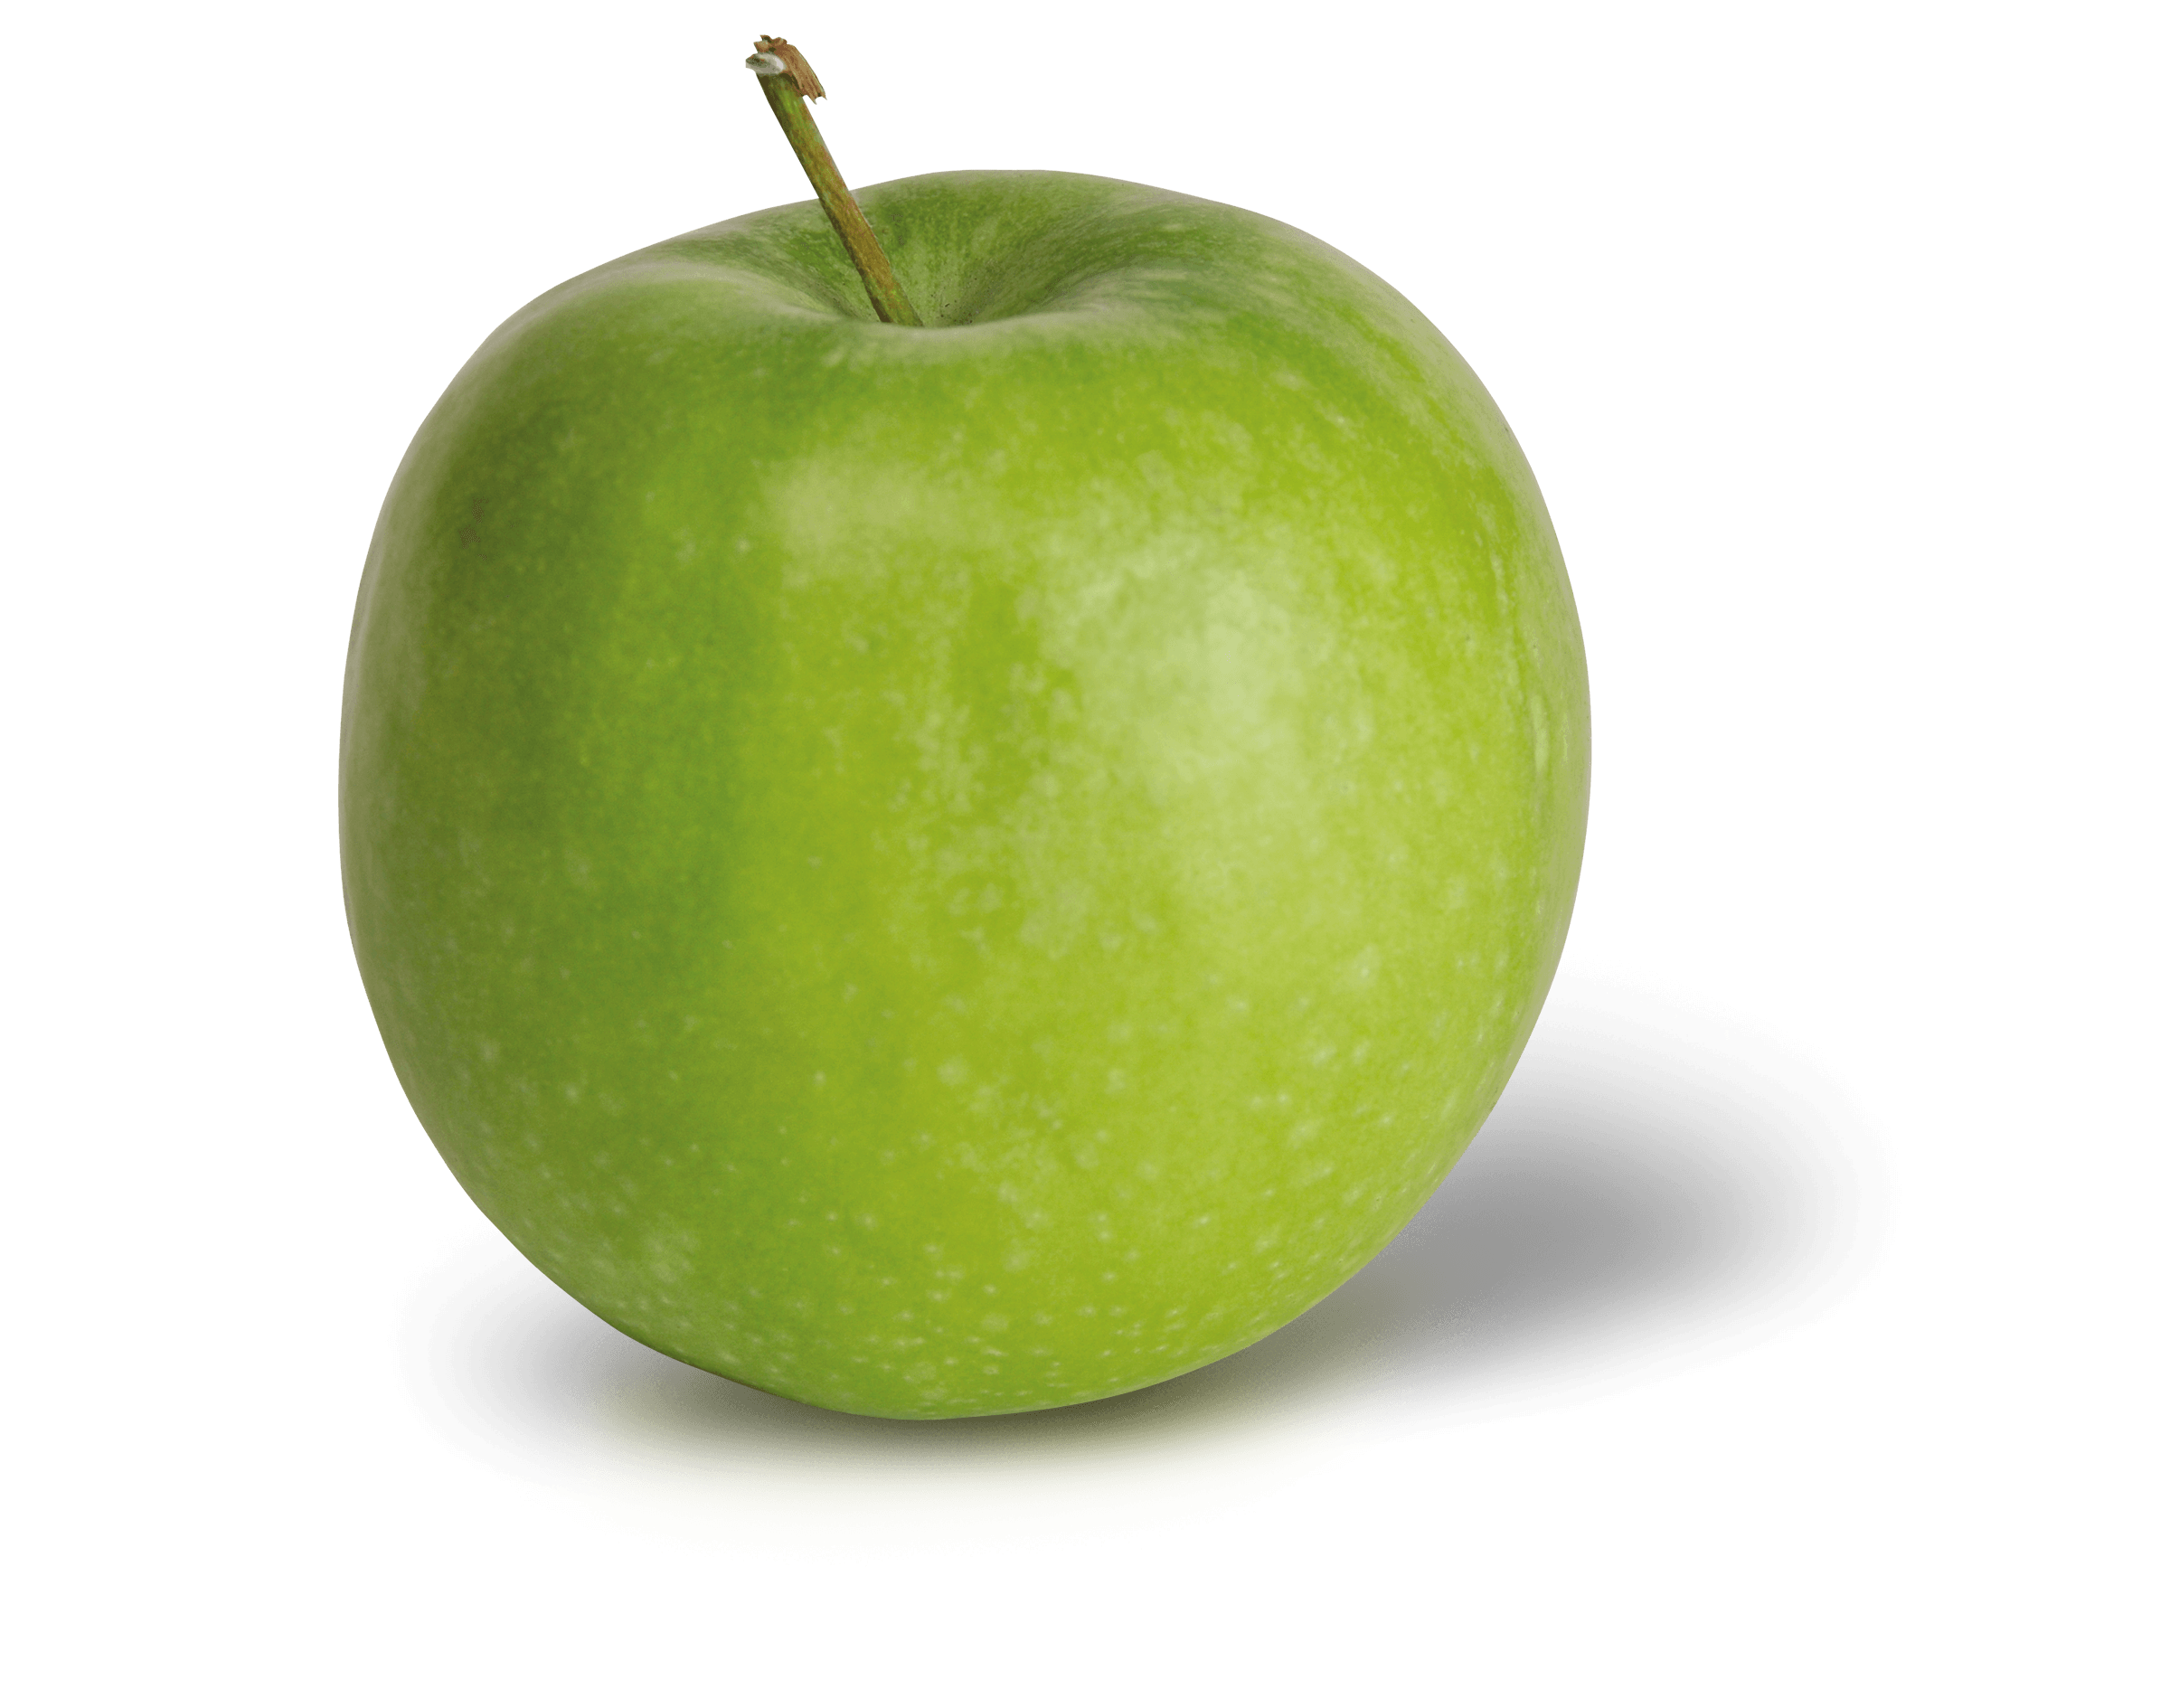 Apple Photo - Granny Smith